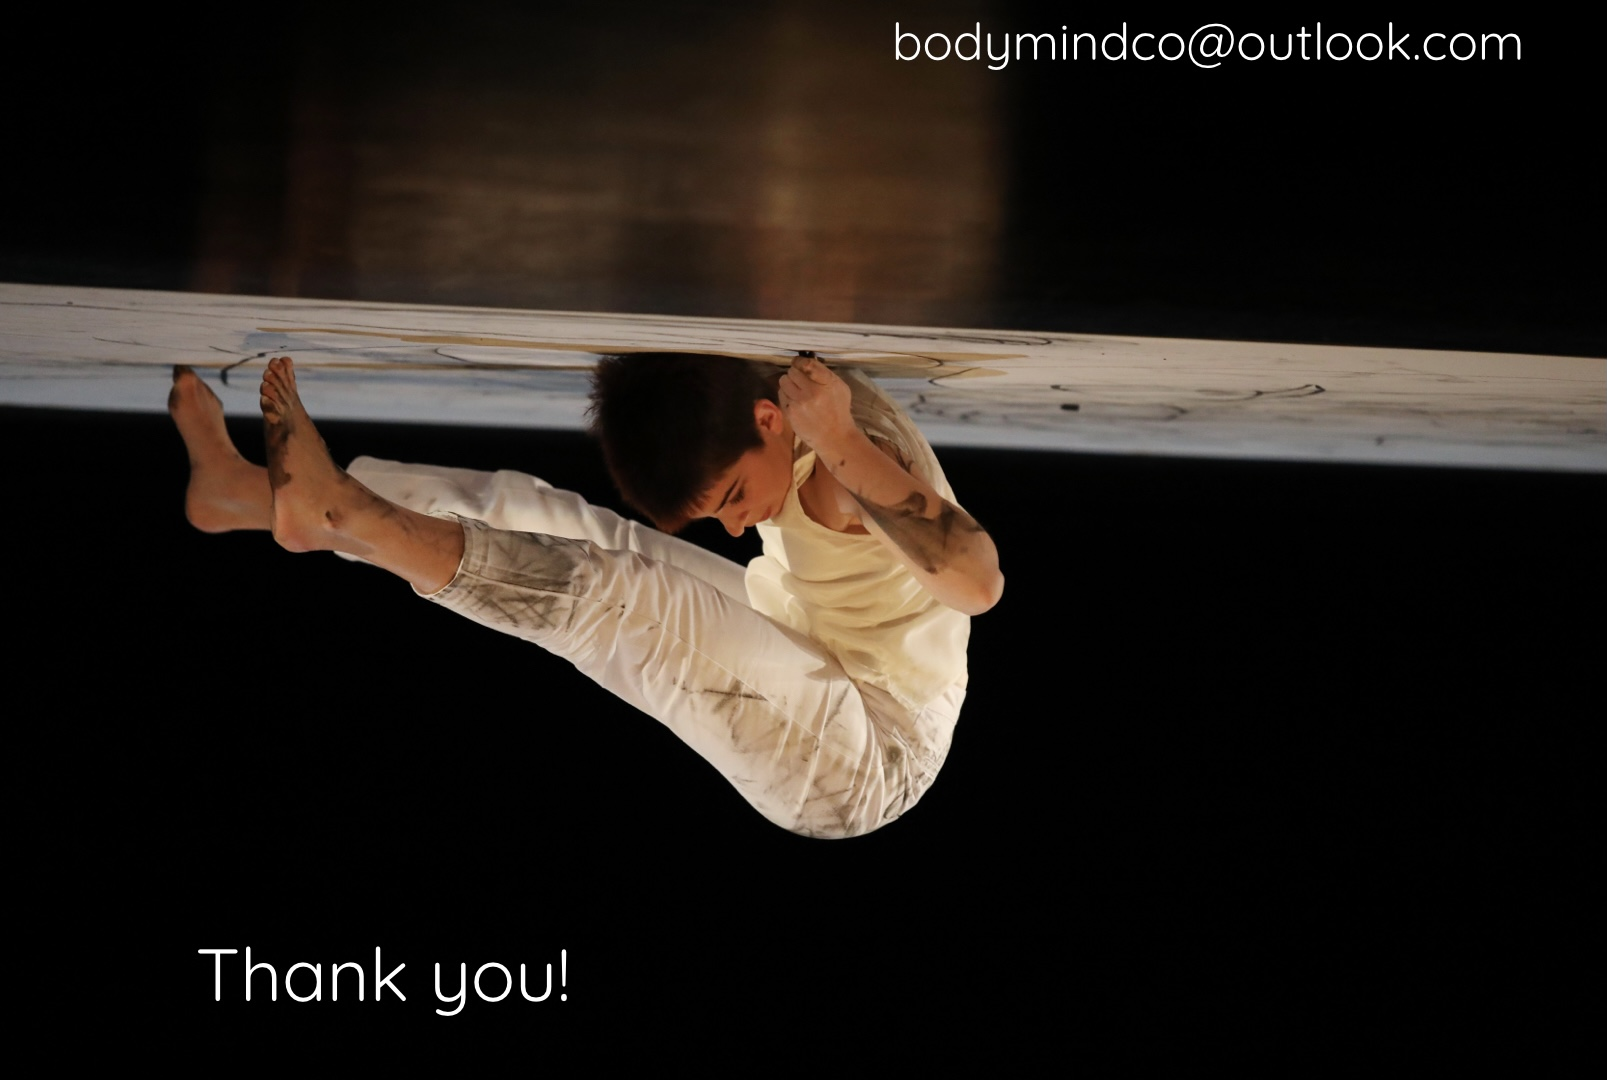 Body Mind Co contact